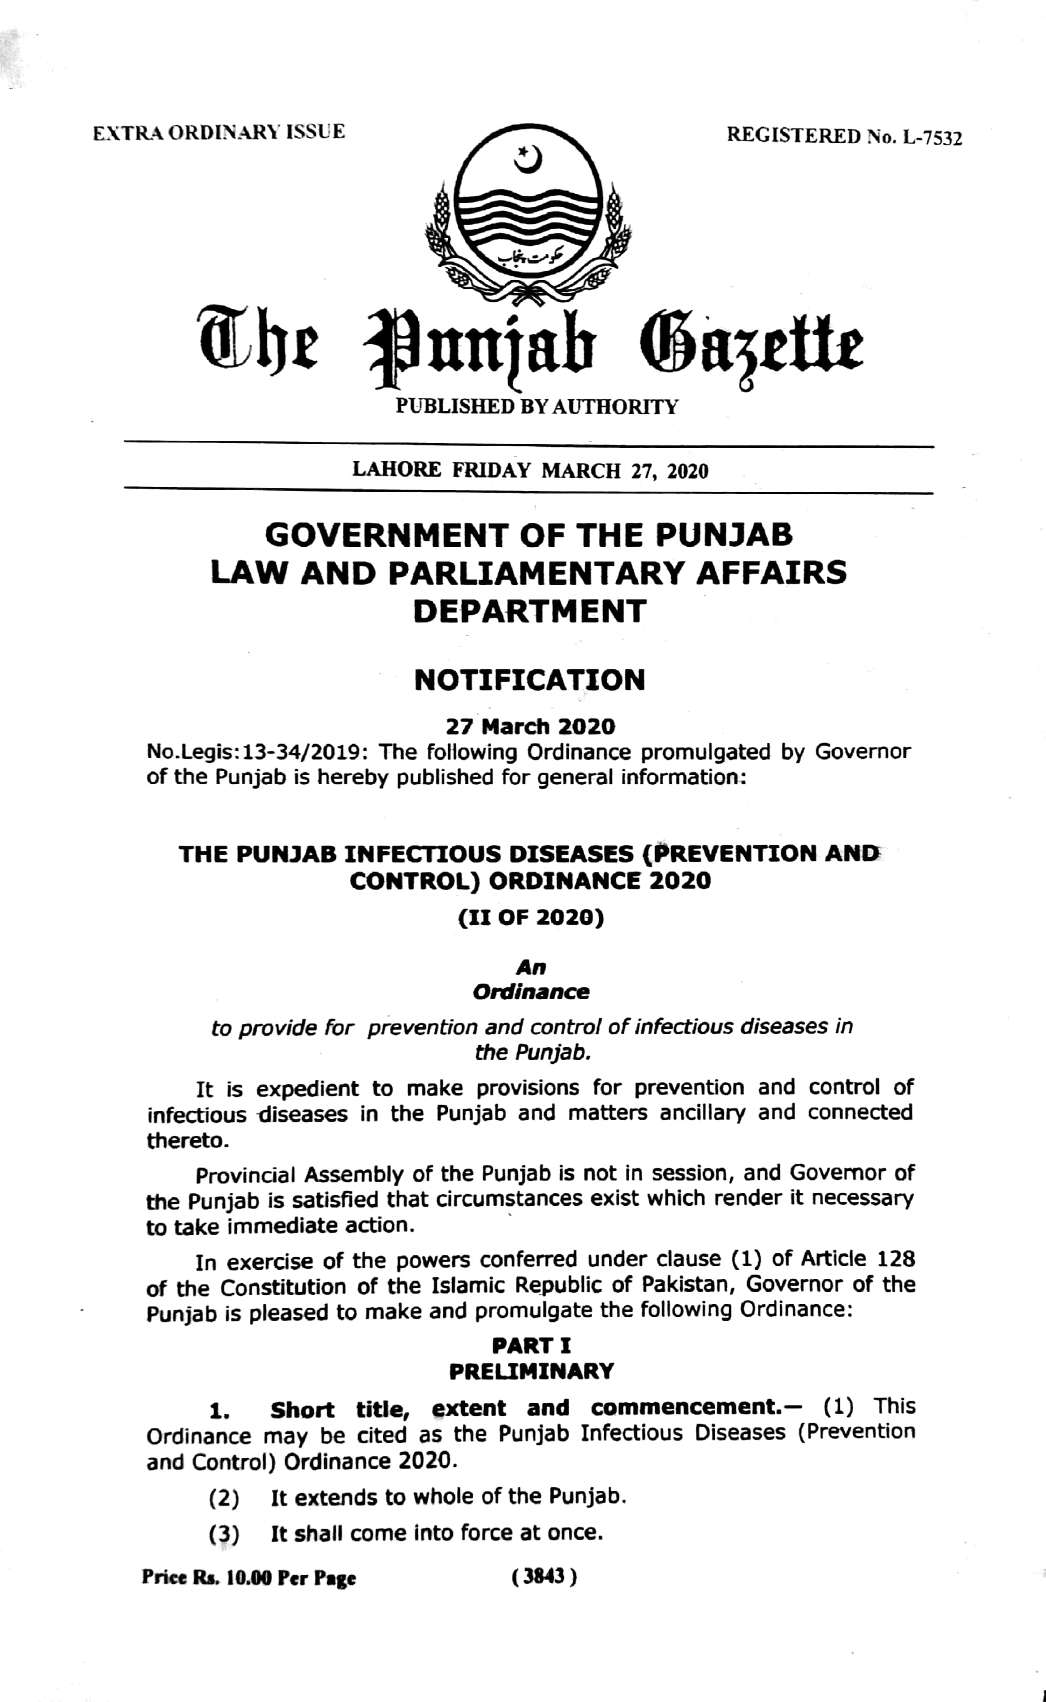 Notification of Punjab Infectious Disease Prevention and Control Ordinance 2020